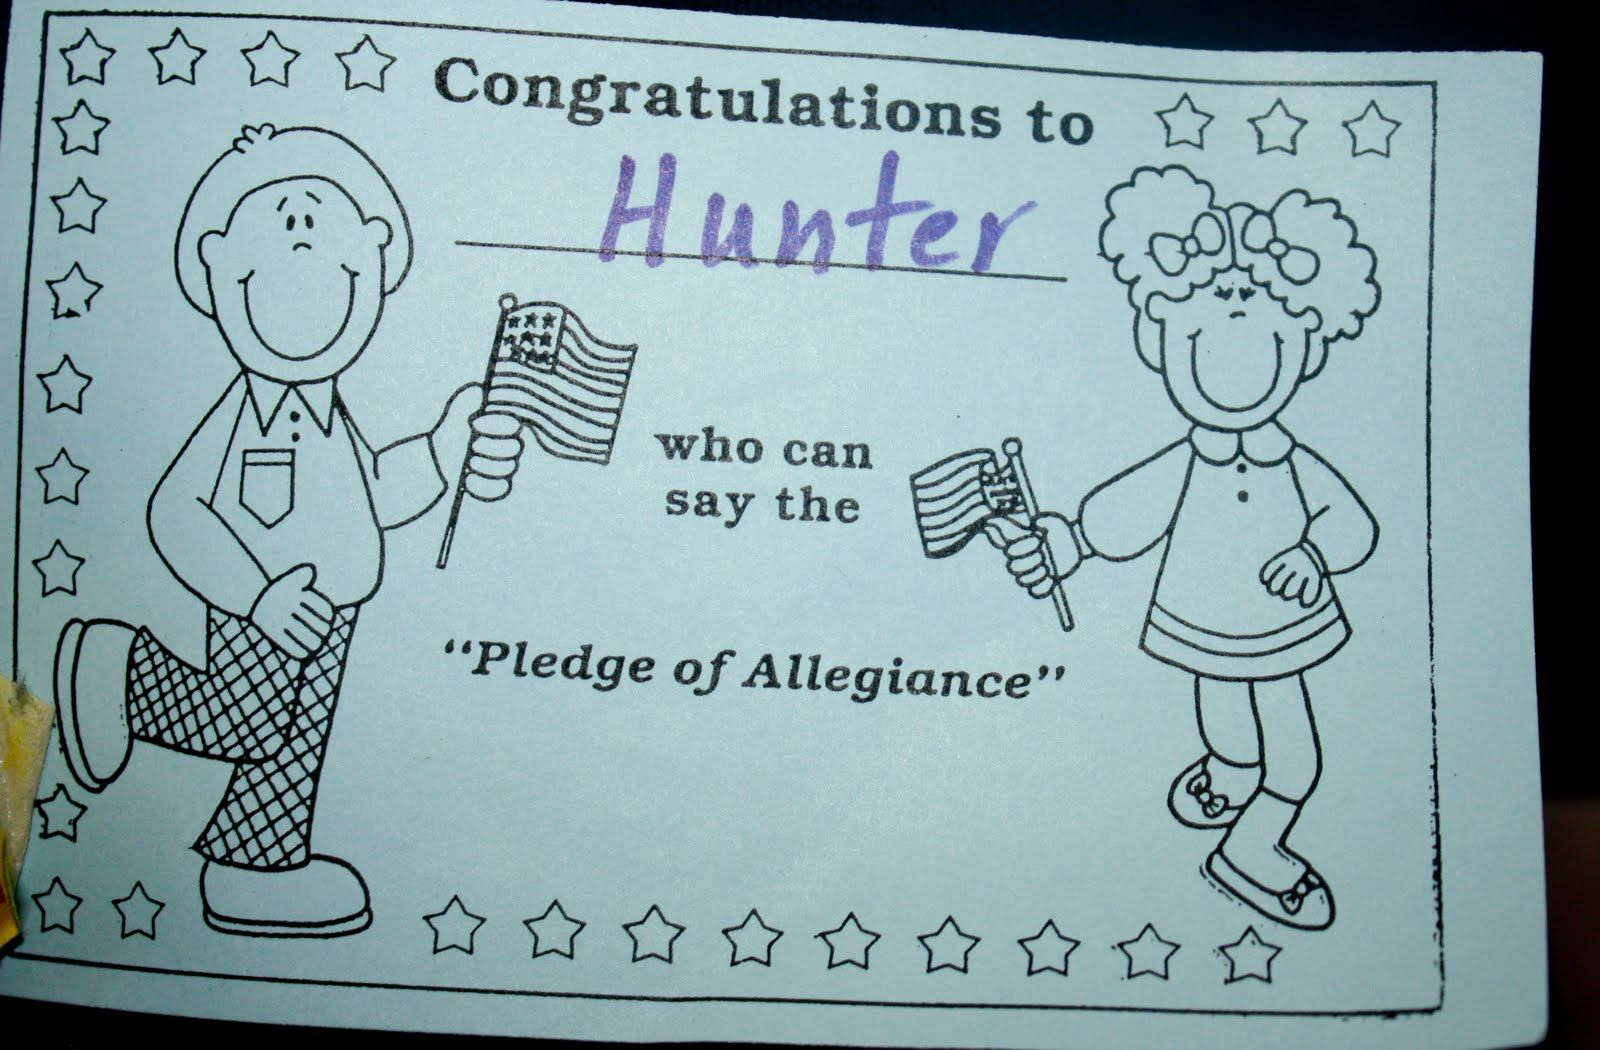 True Blue Aggie Fans: Cheers to Hunter!